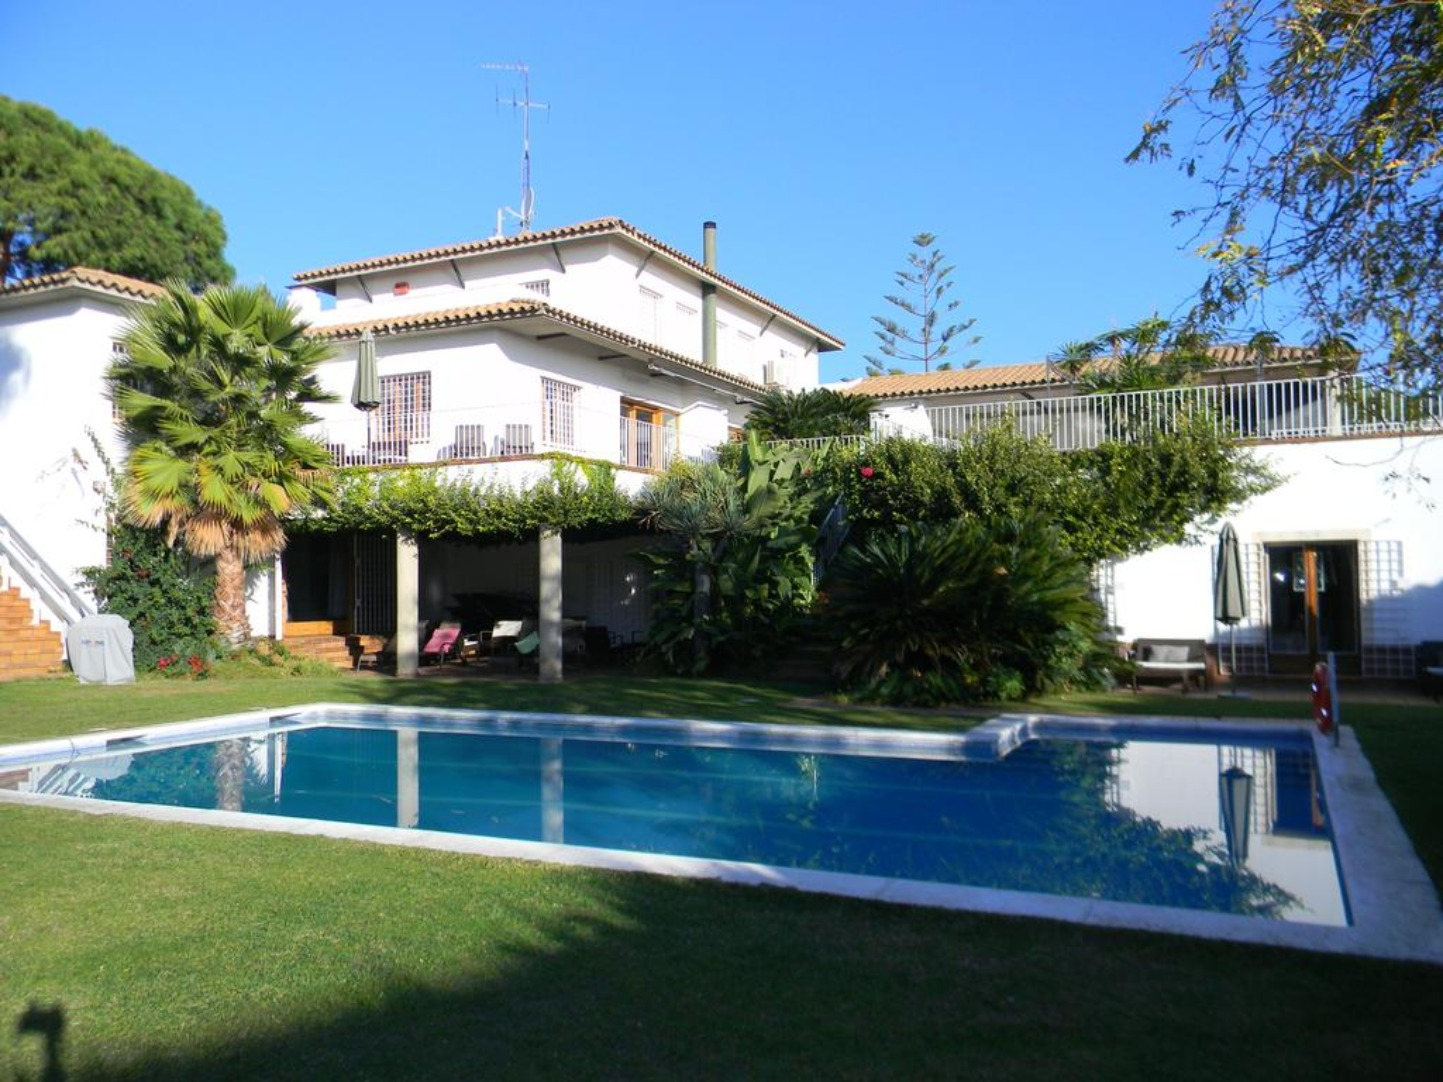 A house with a pool in front of a building at Gavina Mar.